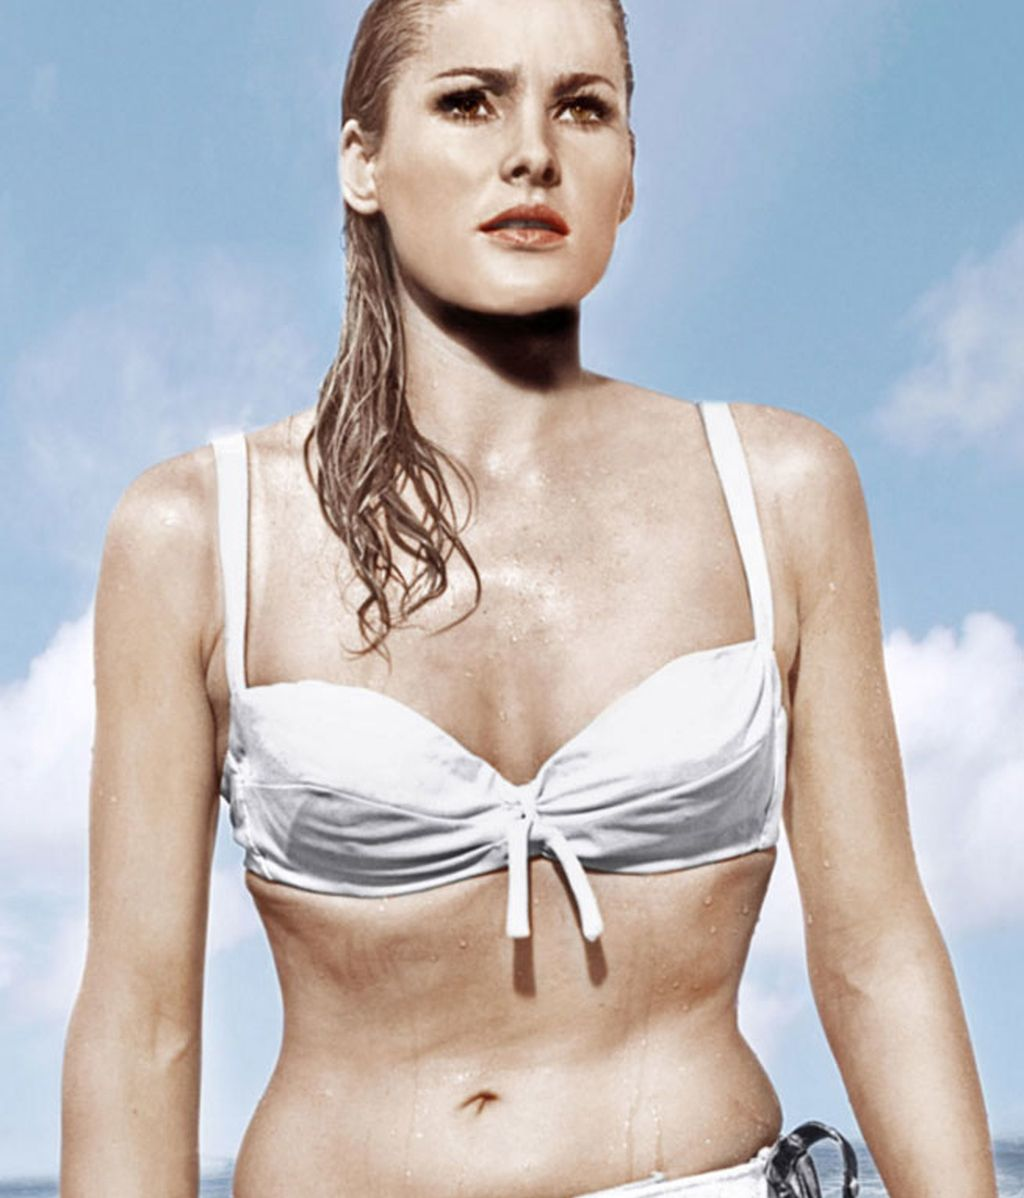 Ursula Andress, en '007 contra el doctor no'